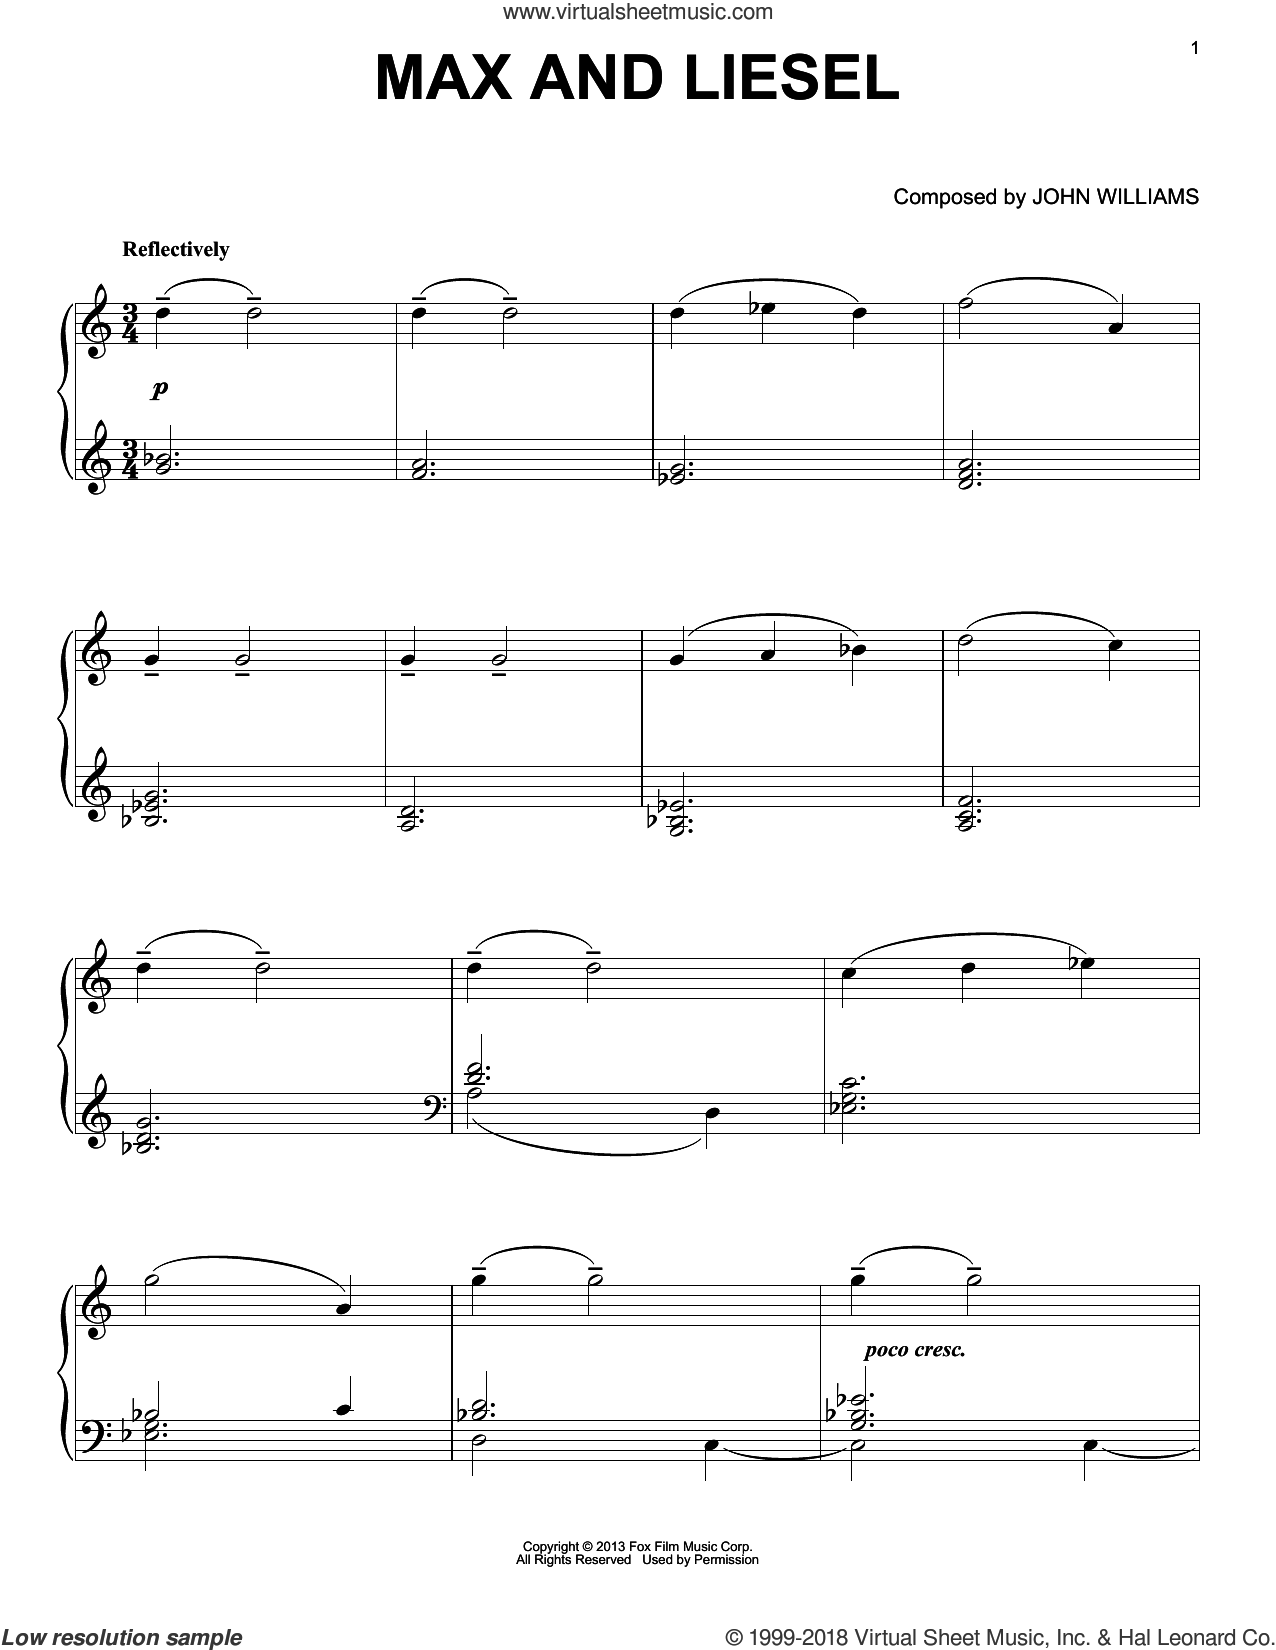 Max And Liesel sheet music for piano solo by John Williams. Score Image Preview.